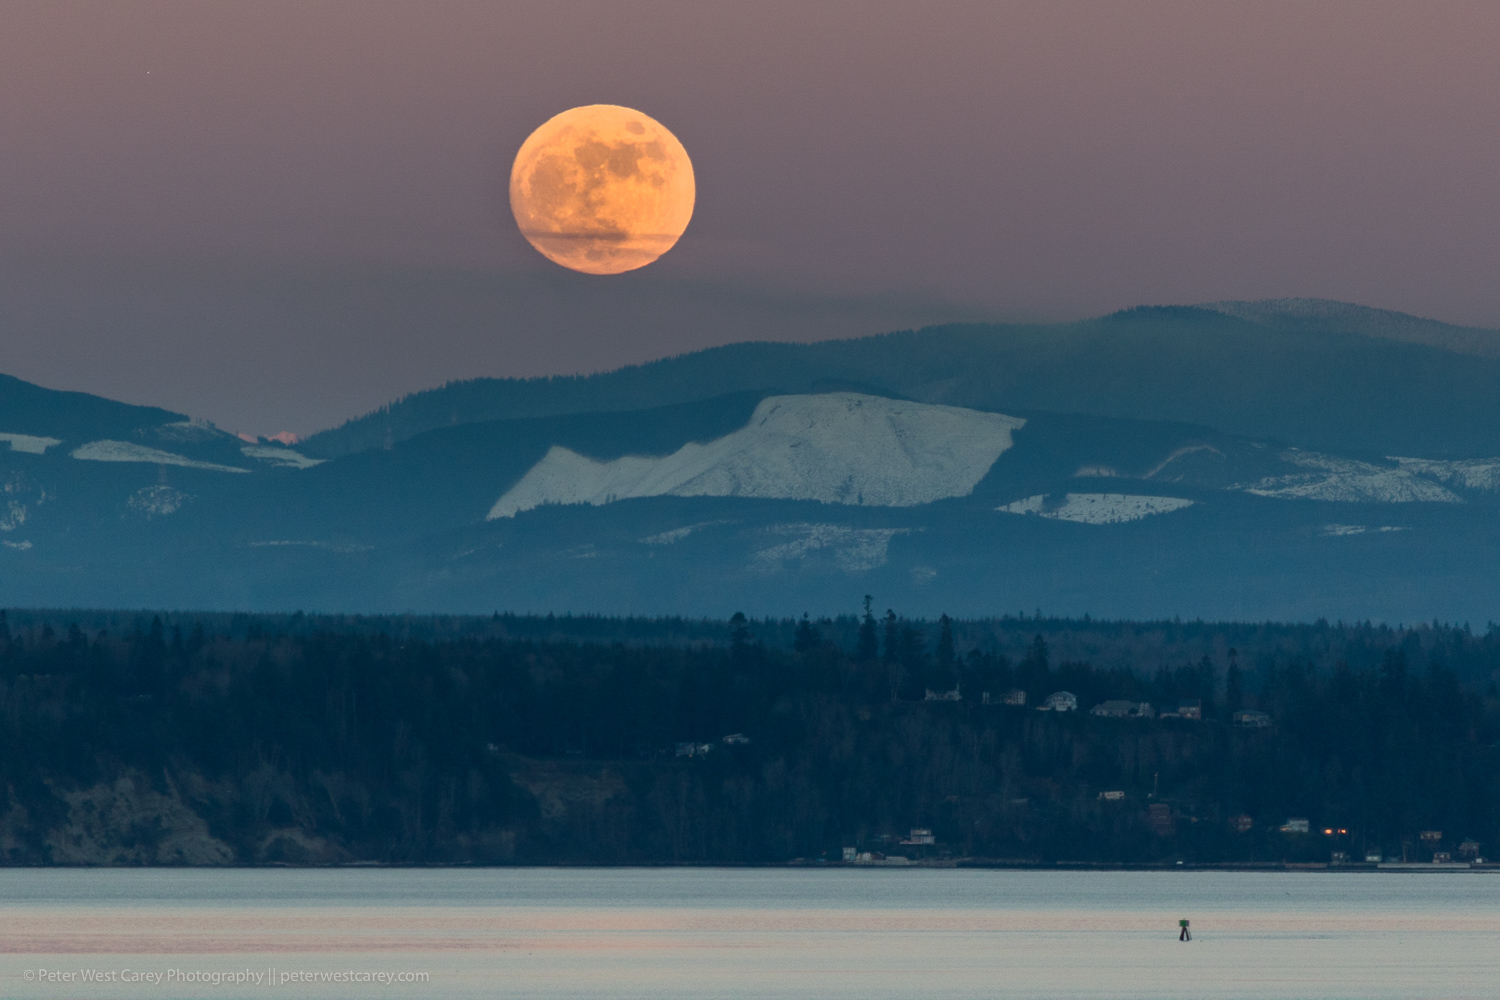 Image: Full moon rising above Washington's Cascade Mountains and Puget Sound